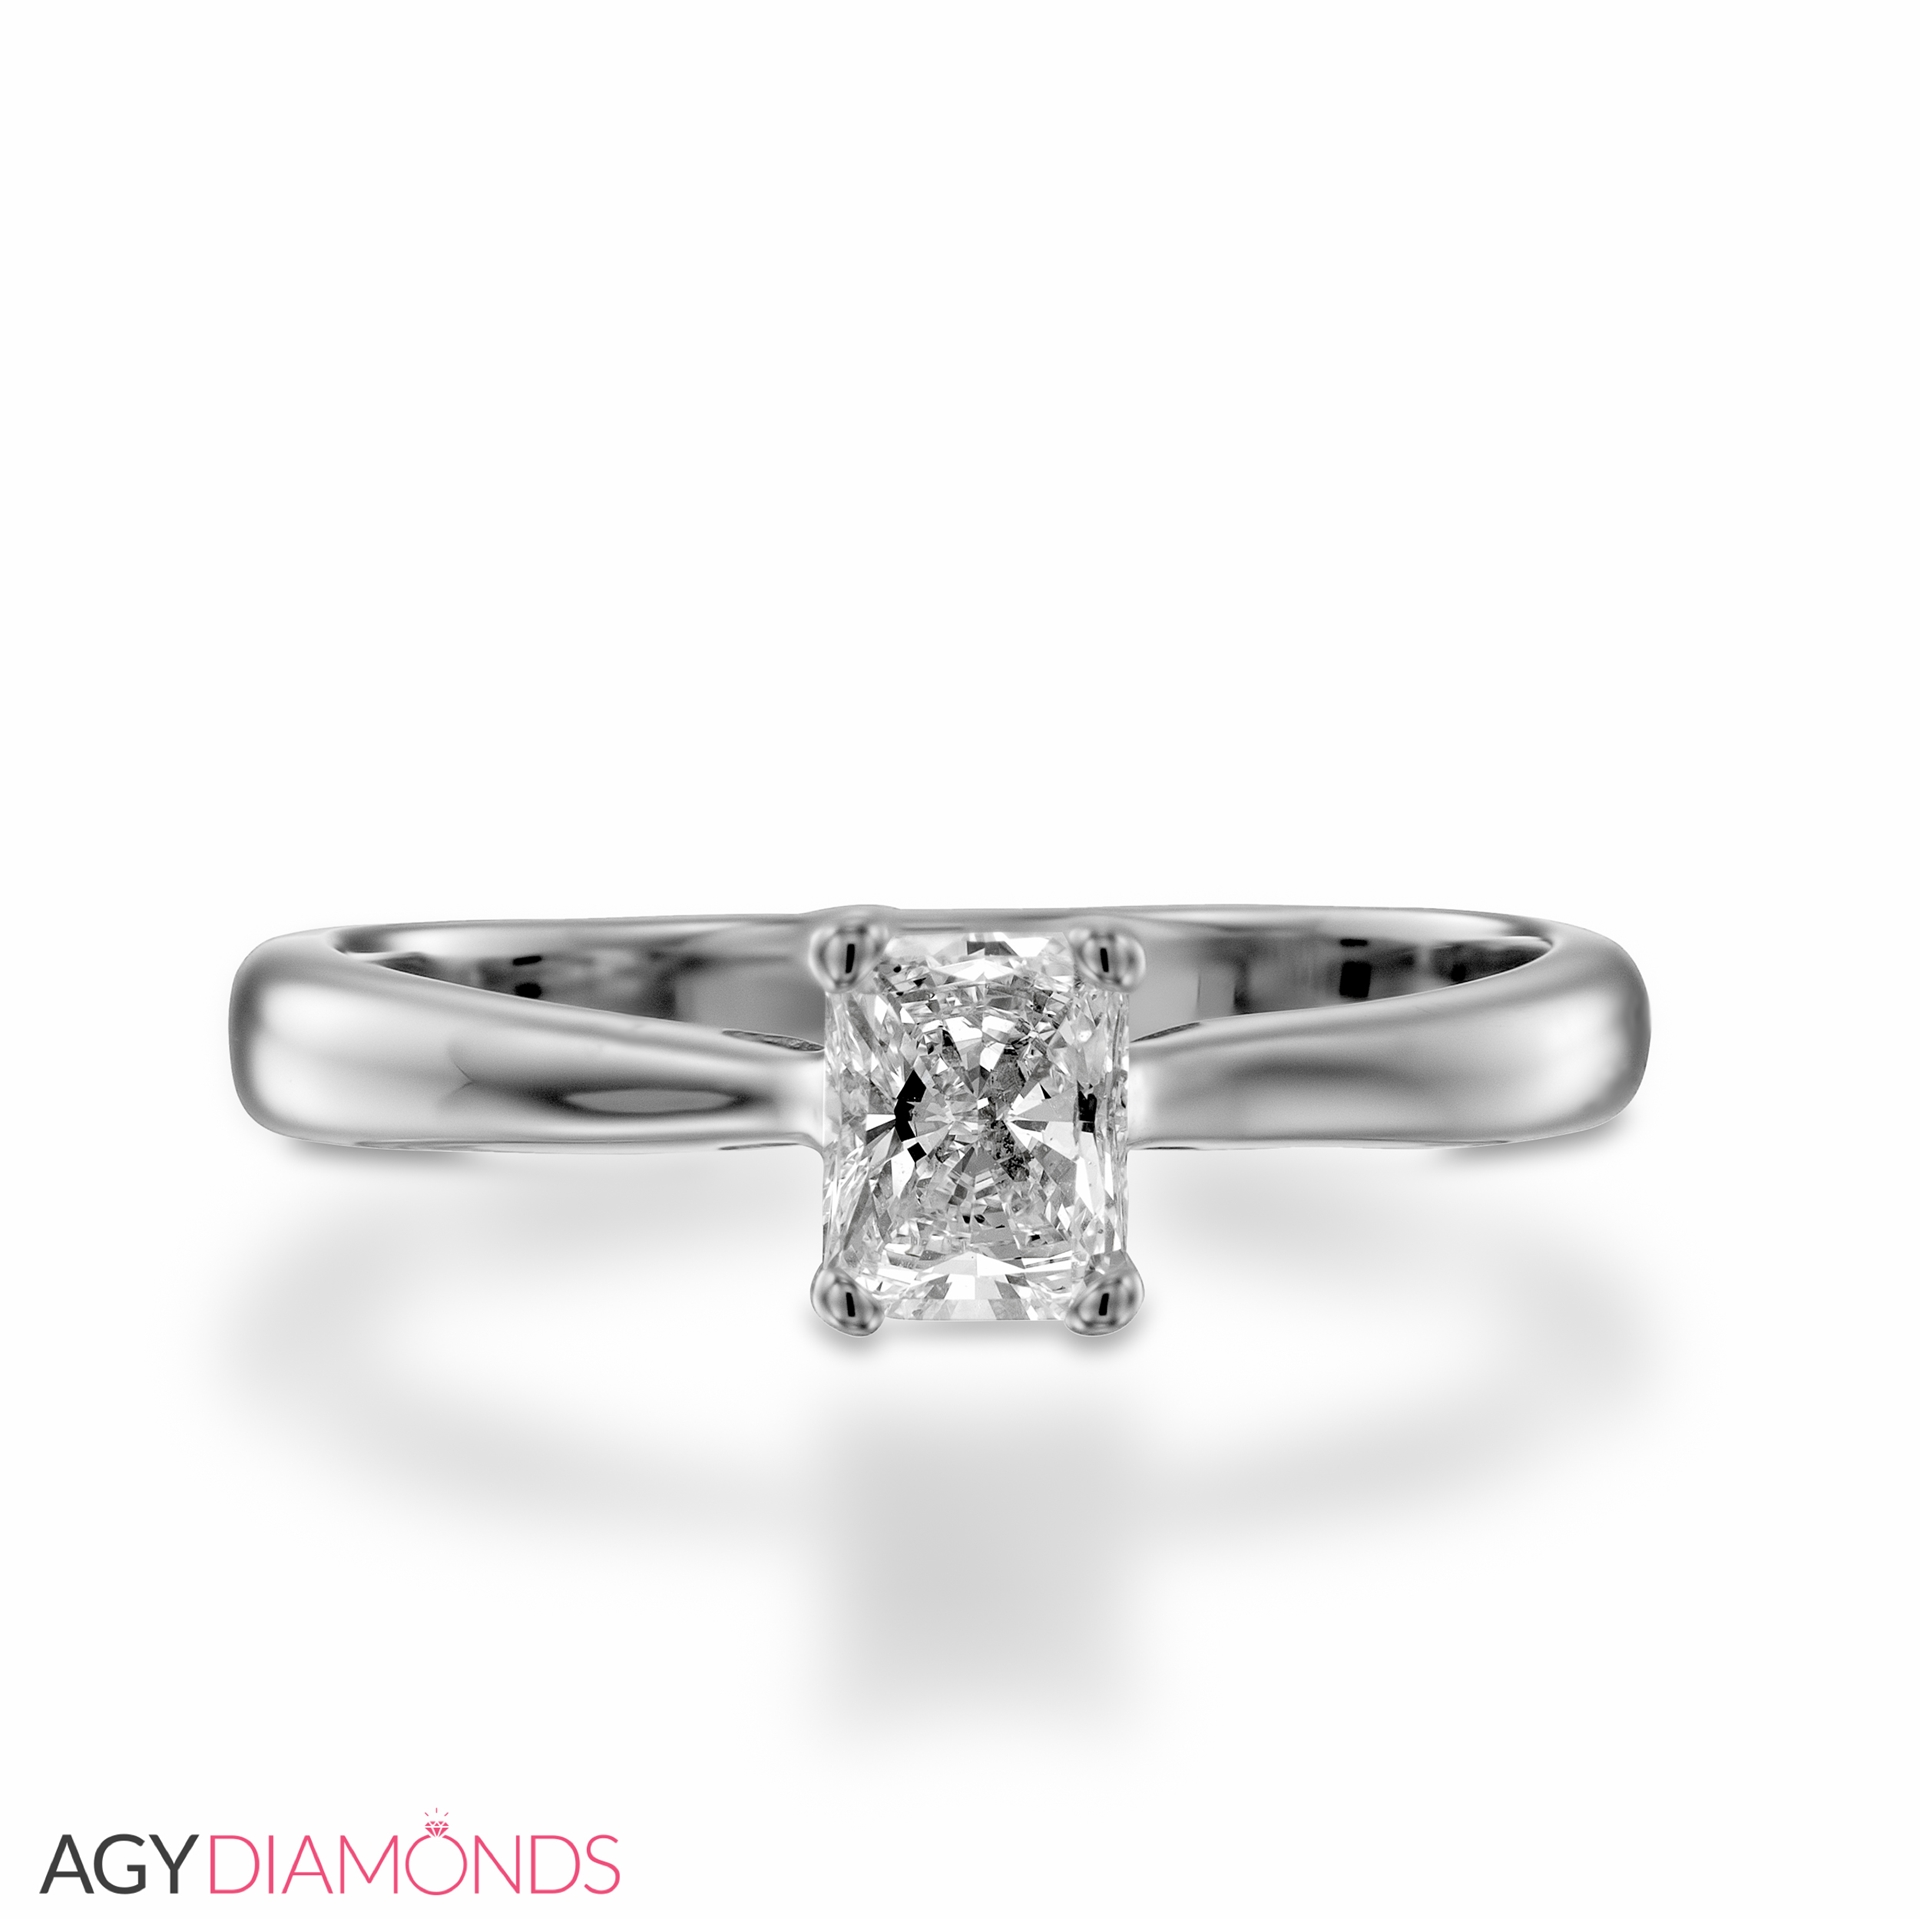 set platinum jewelry engagement diamond cushion plat style cut ring in band pave solitaire cusion with